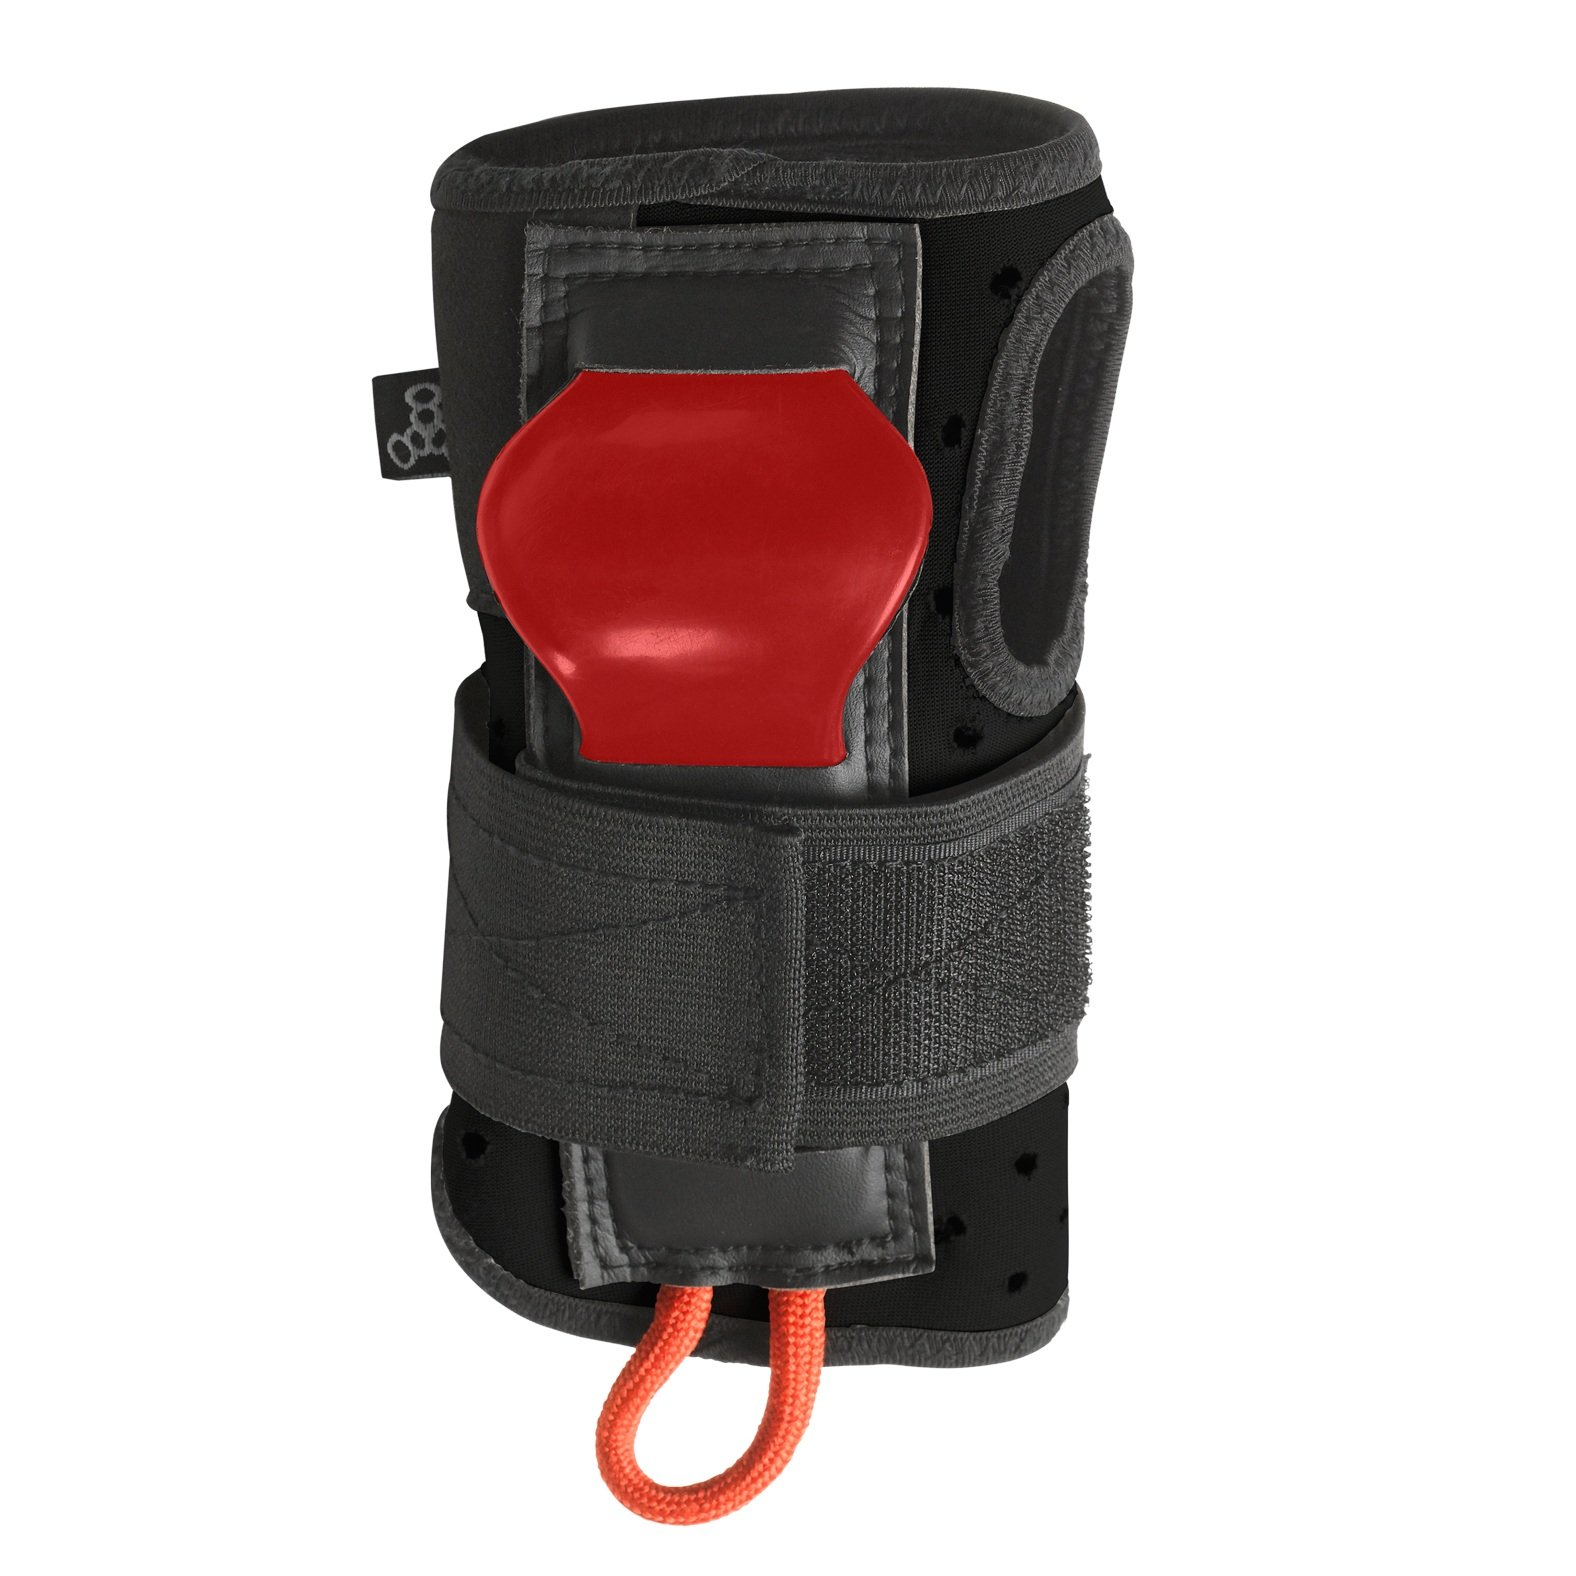 Triple Eight RD Wristsaver Wrist Guards for Roller Derby and Skateboarding (1 Pair), Small by Triple Eight